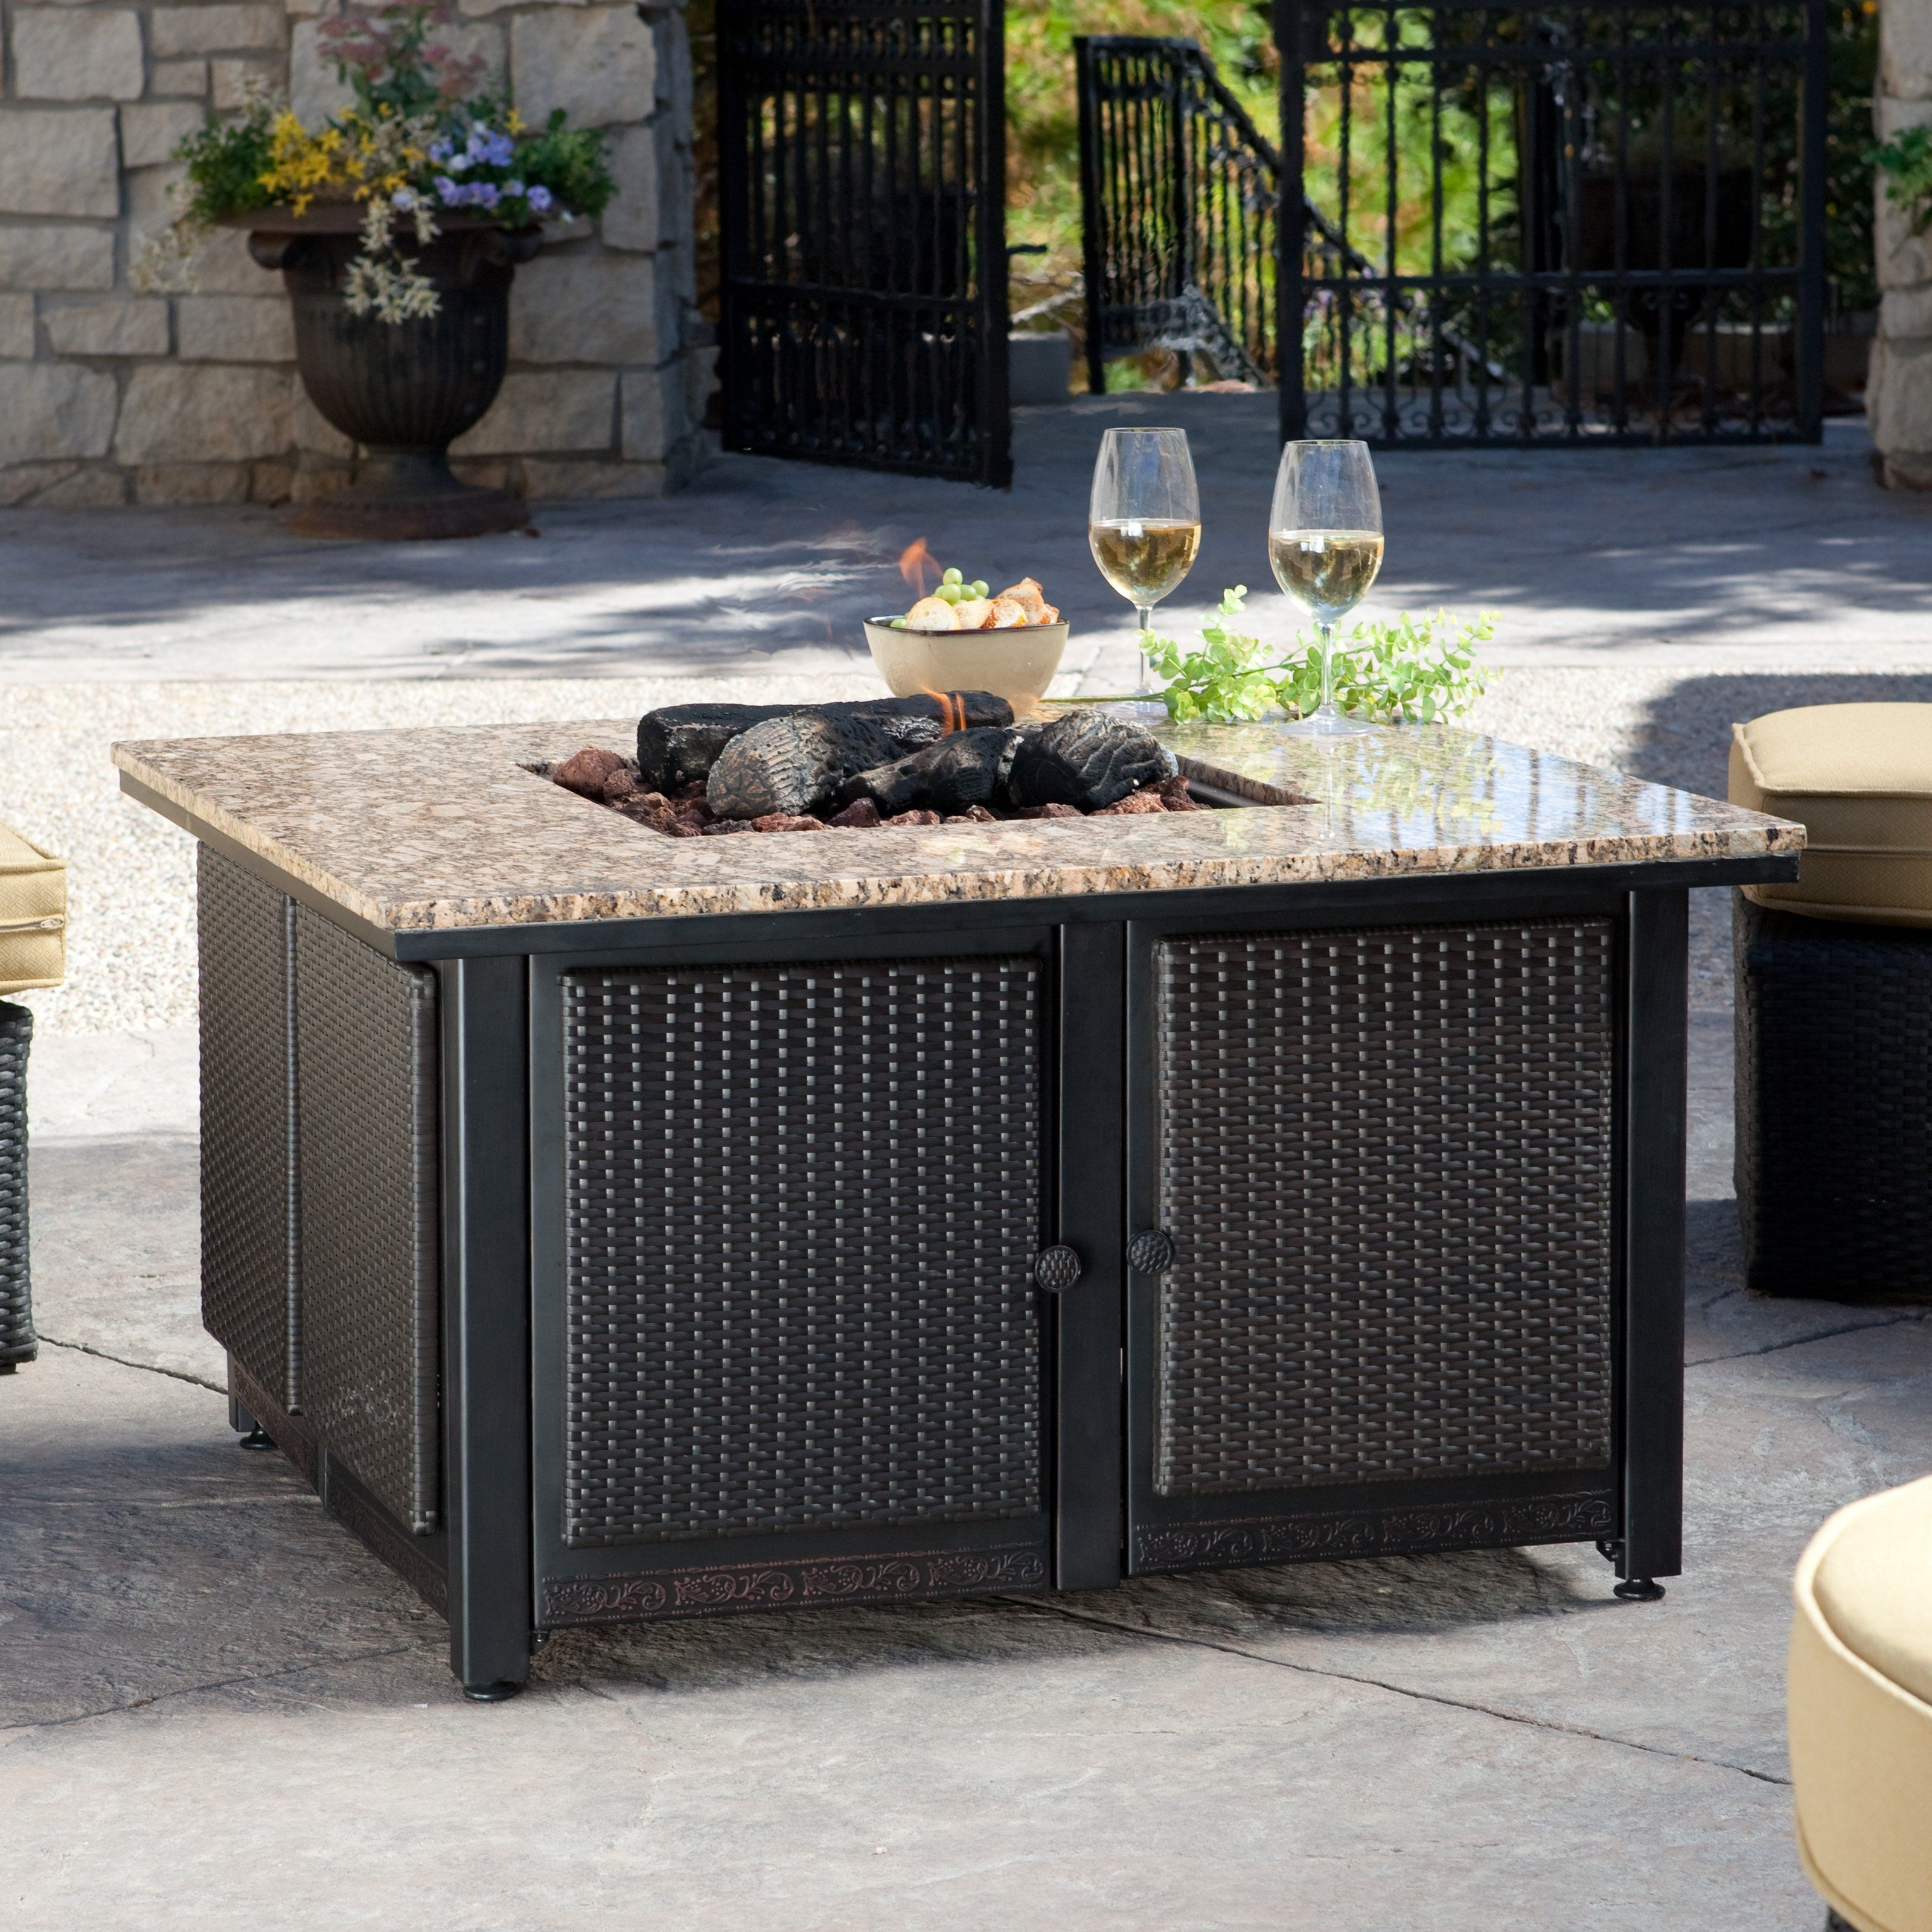 Uniflame Granite Table Propane Fire Pit With Free Cover 849 98